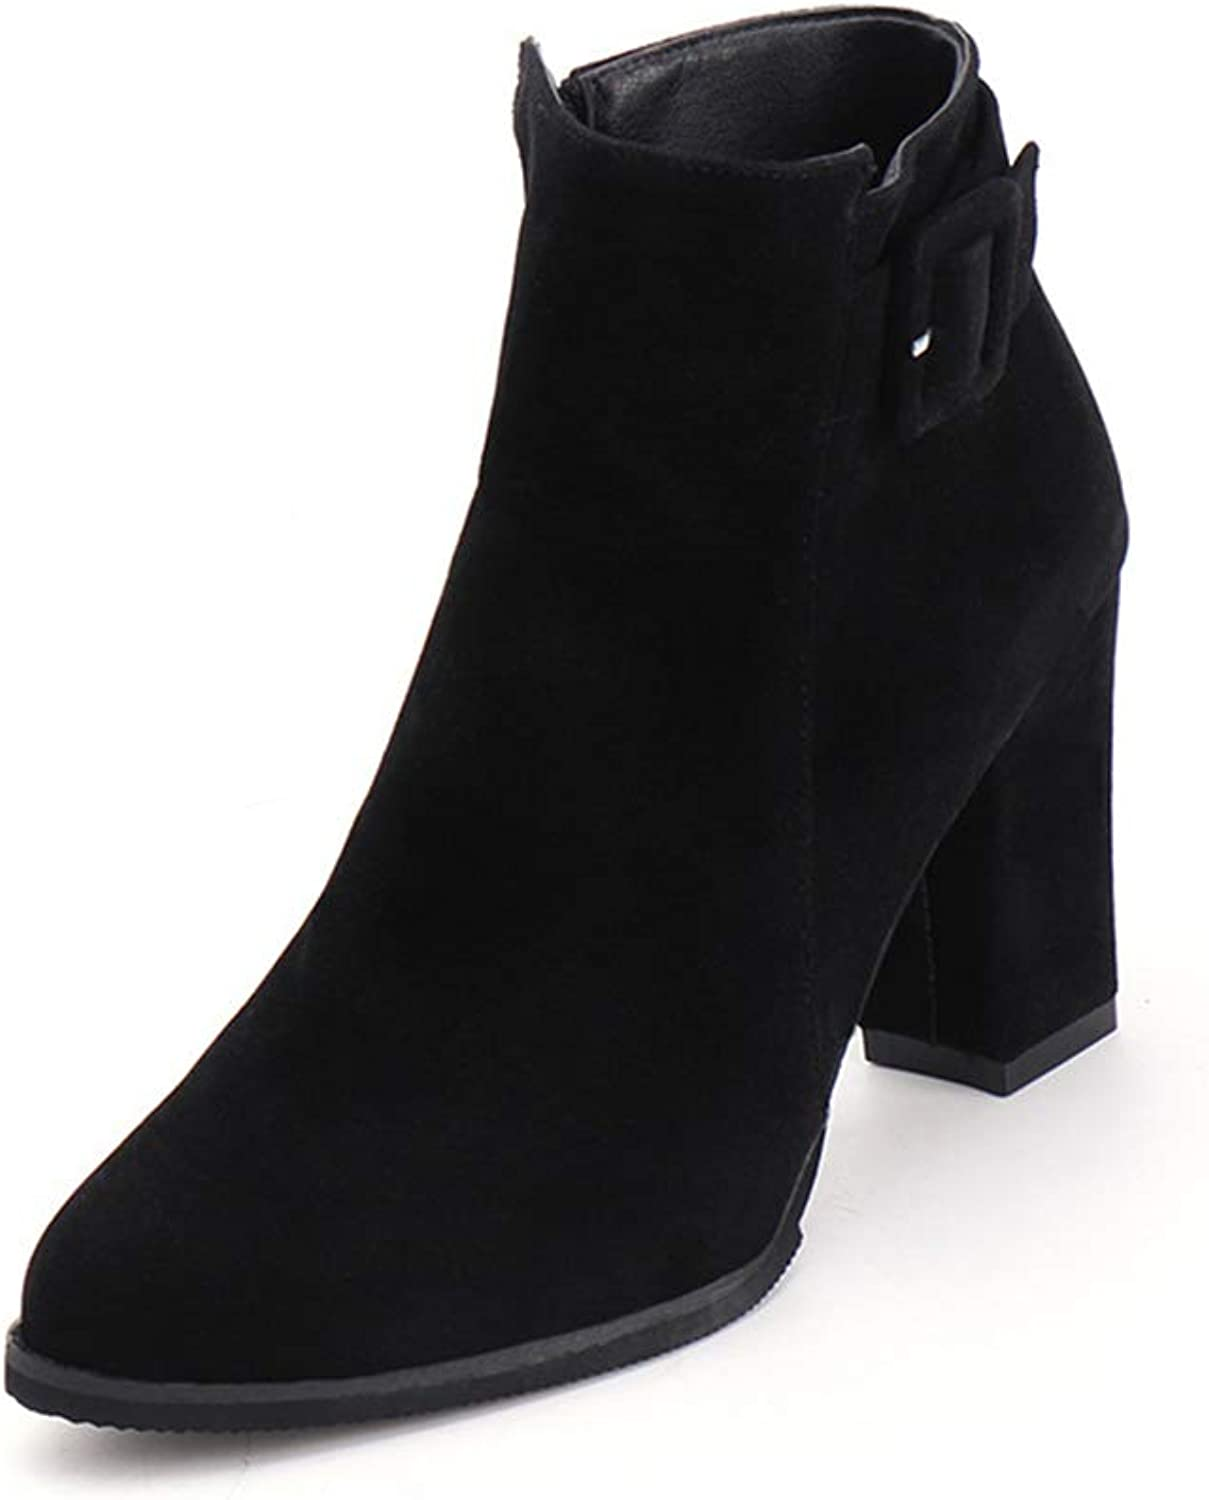 Super frist Women's High-Heeled Martin Boots Pointed Fashion Ankle Boots Retro and Bare Boots